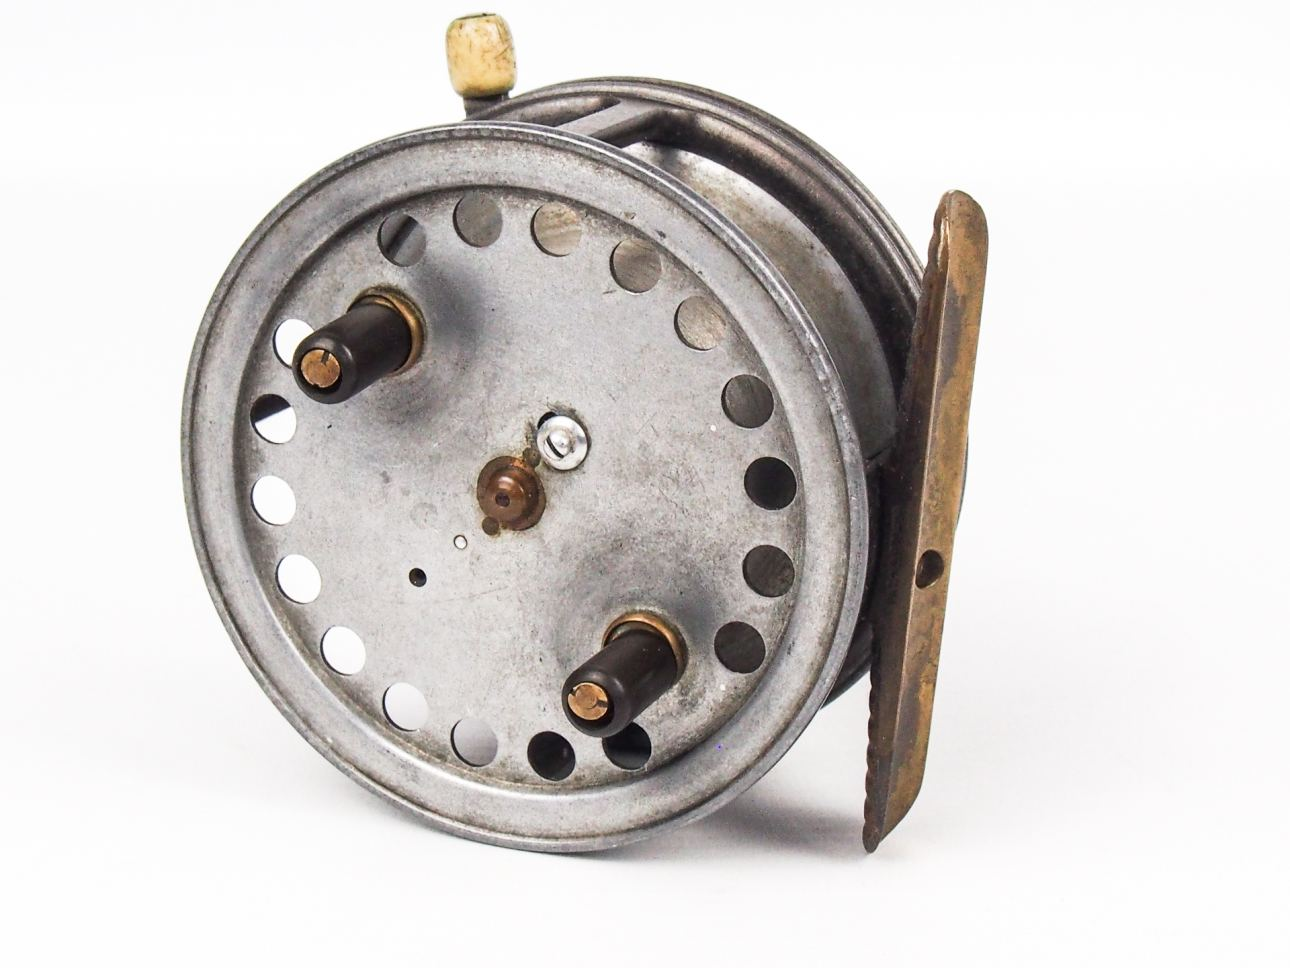 Hardy 3 1 2 super silex bait casting reel vintage for Vintage fishing reels for sale